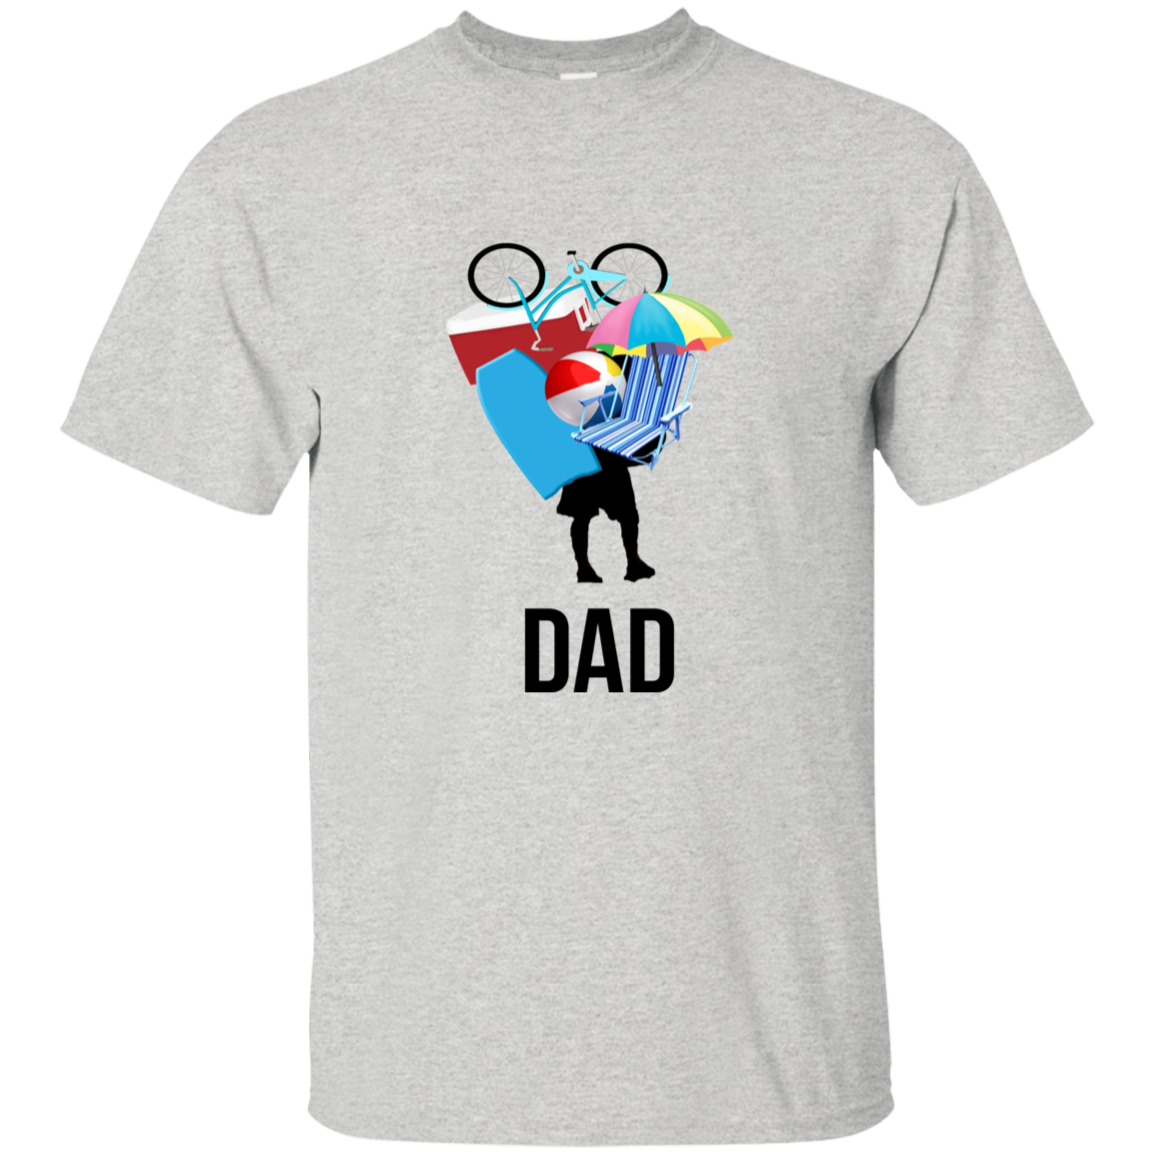 Dad Carrying Stuff Father's Day Cotton T-Shirt